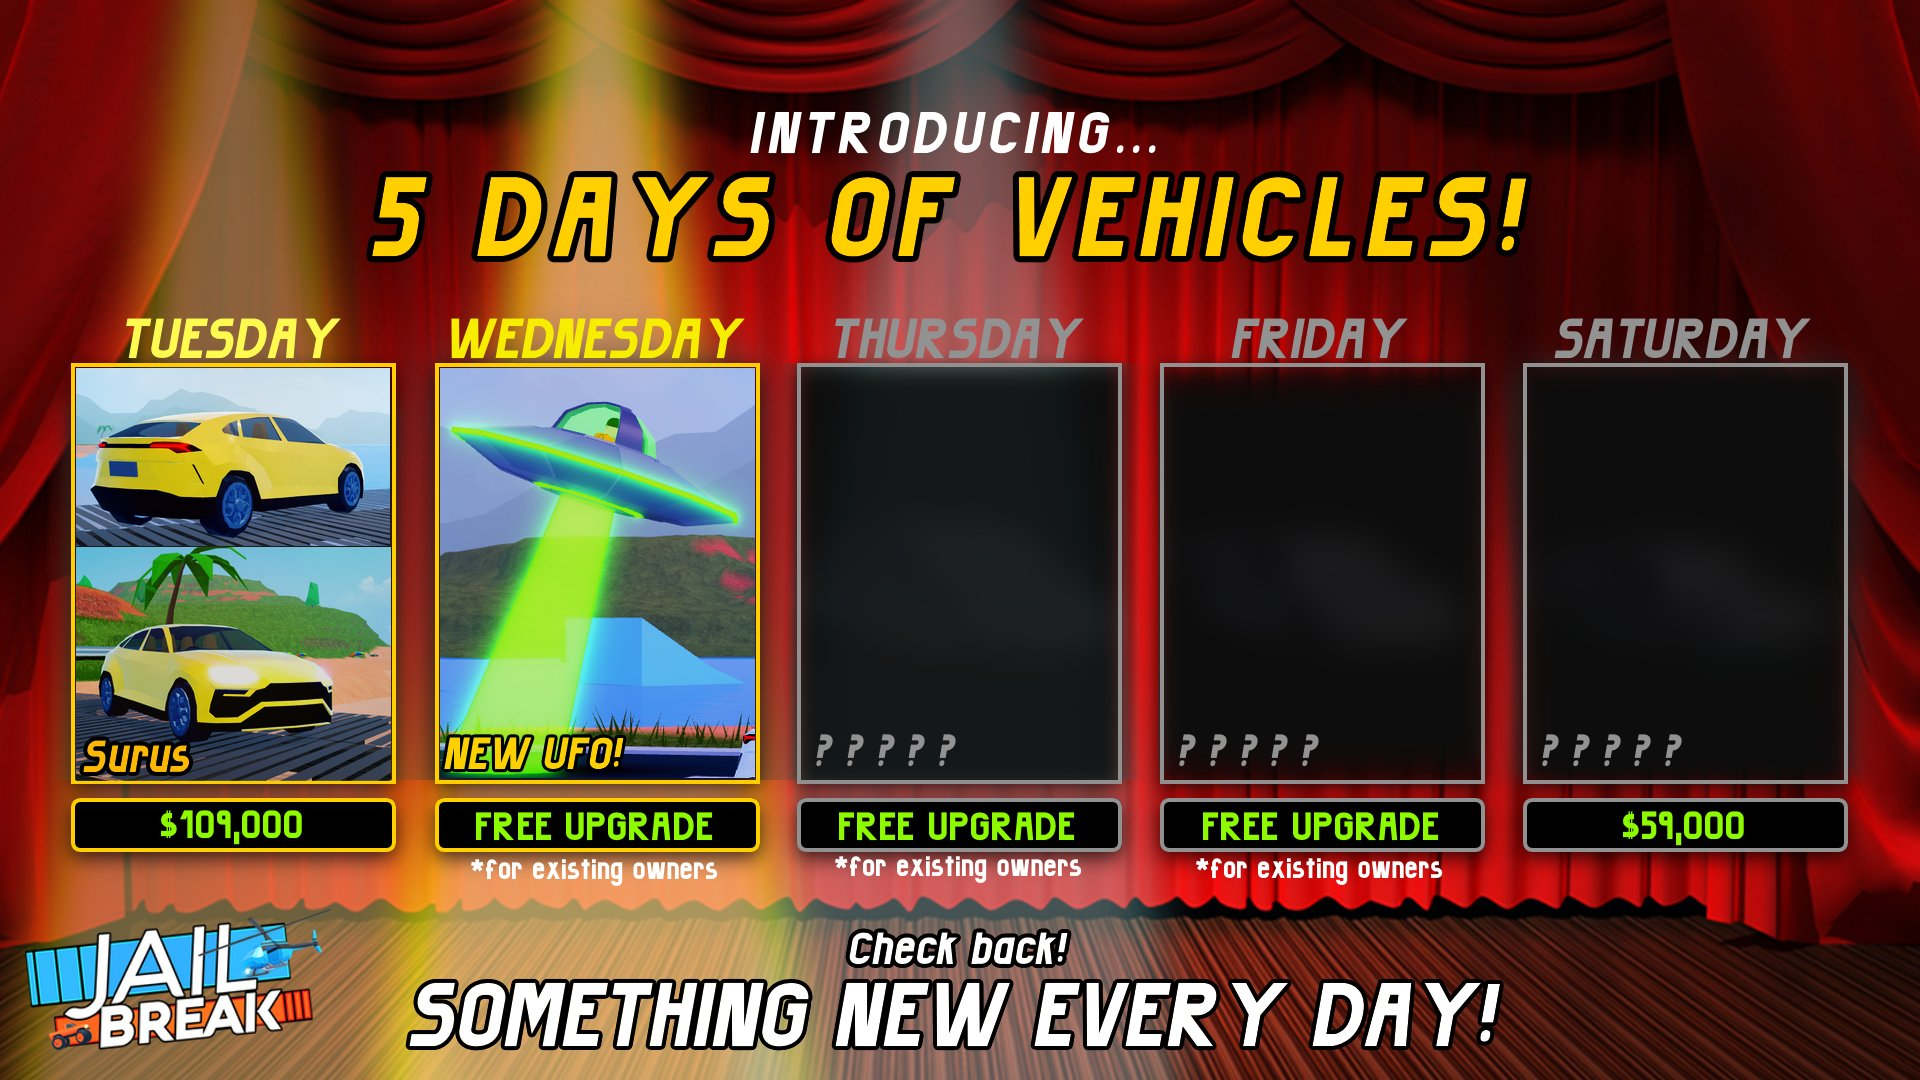 How To Hack Robux Into Your Car Badimo On Twitter 5 Days 5 Vehicles The 2nd New Vehicle Is A Refresh And It Is The Ufo This Refreshed Vehicle Is Now Bigger Than Before And Flies